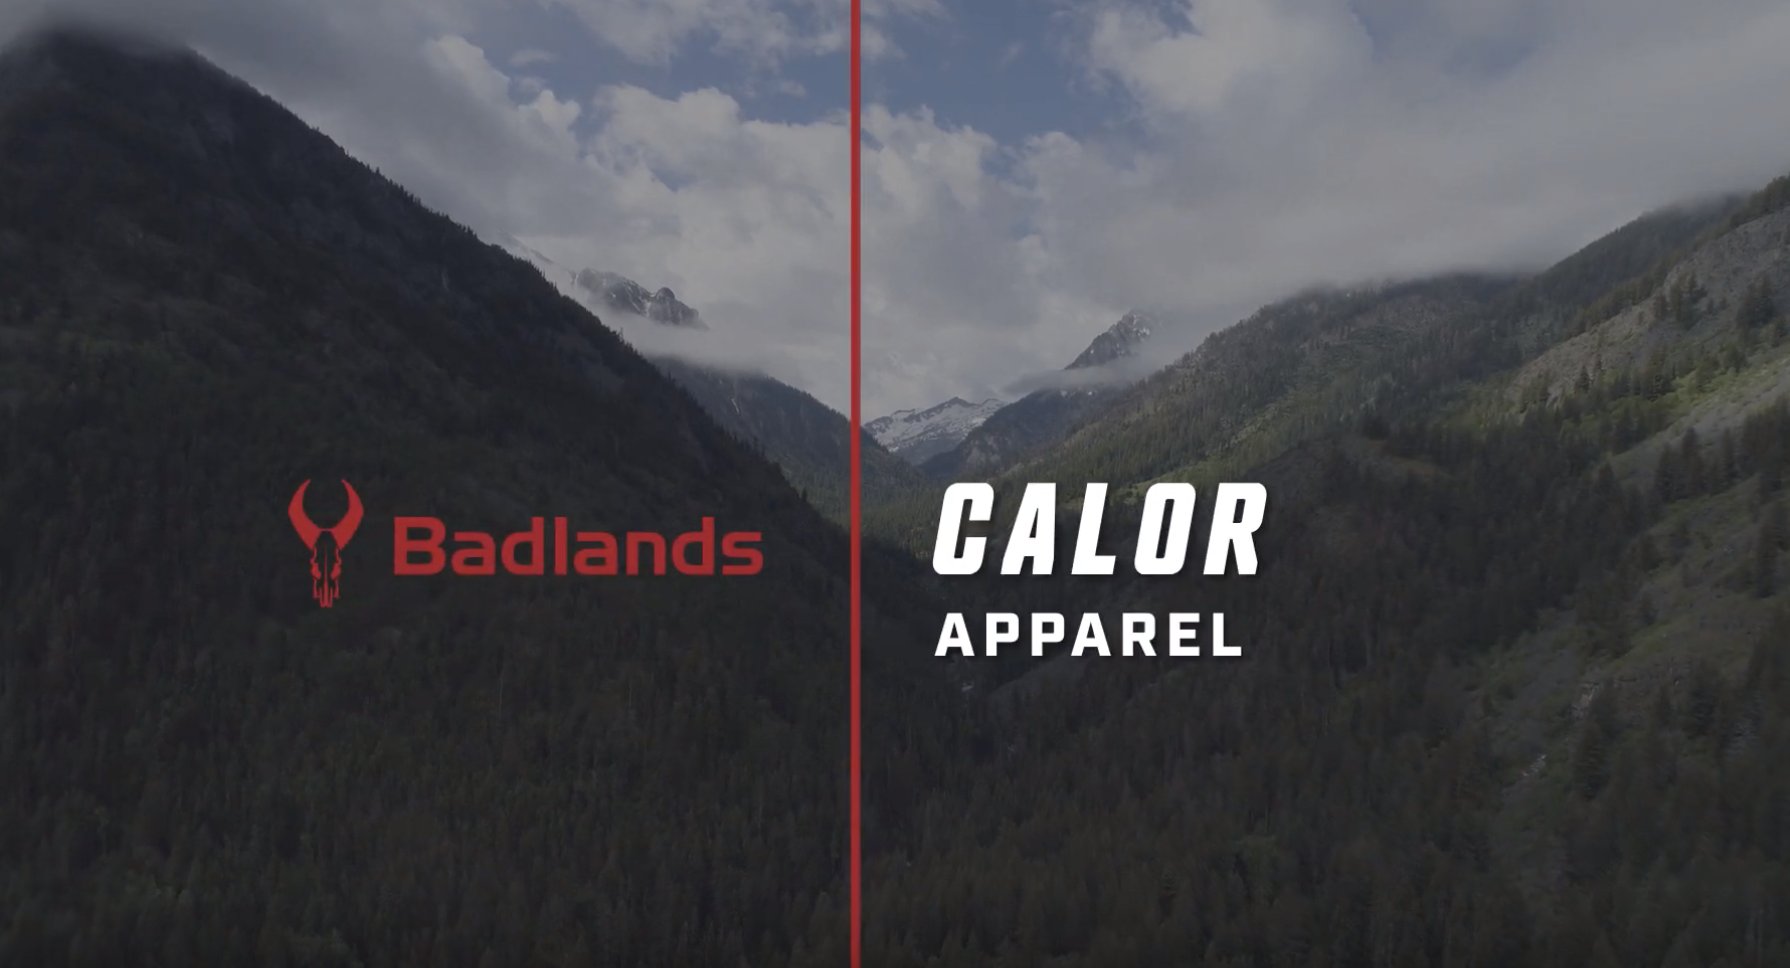 Learn more about the Calor Apparel